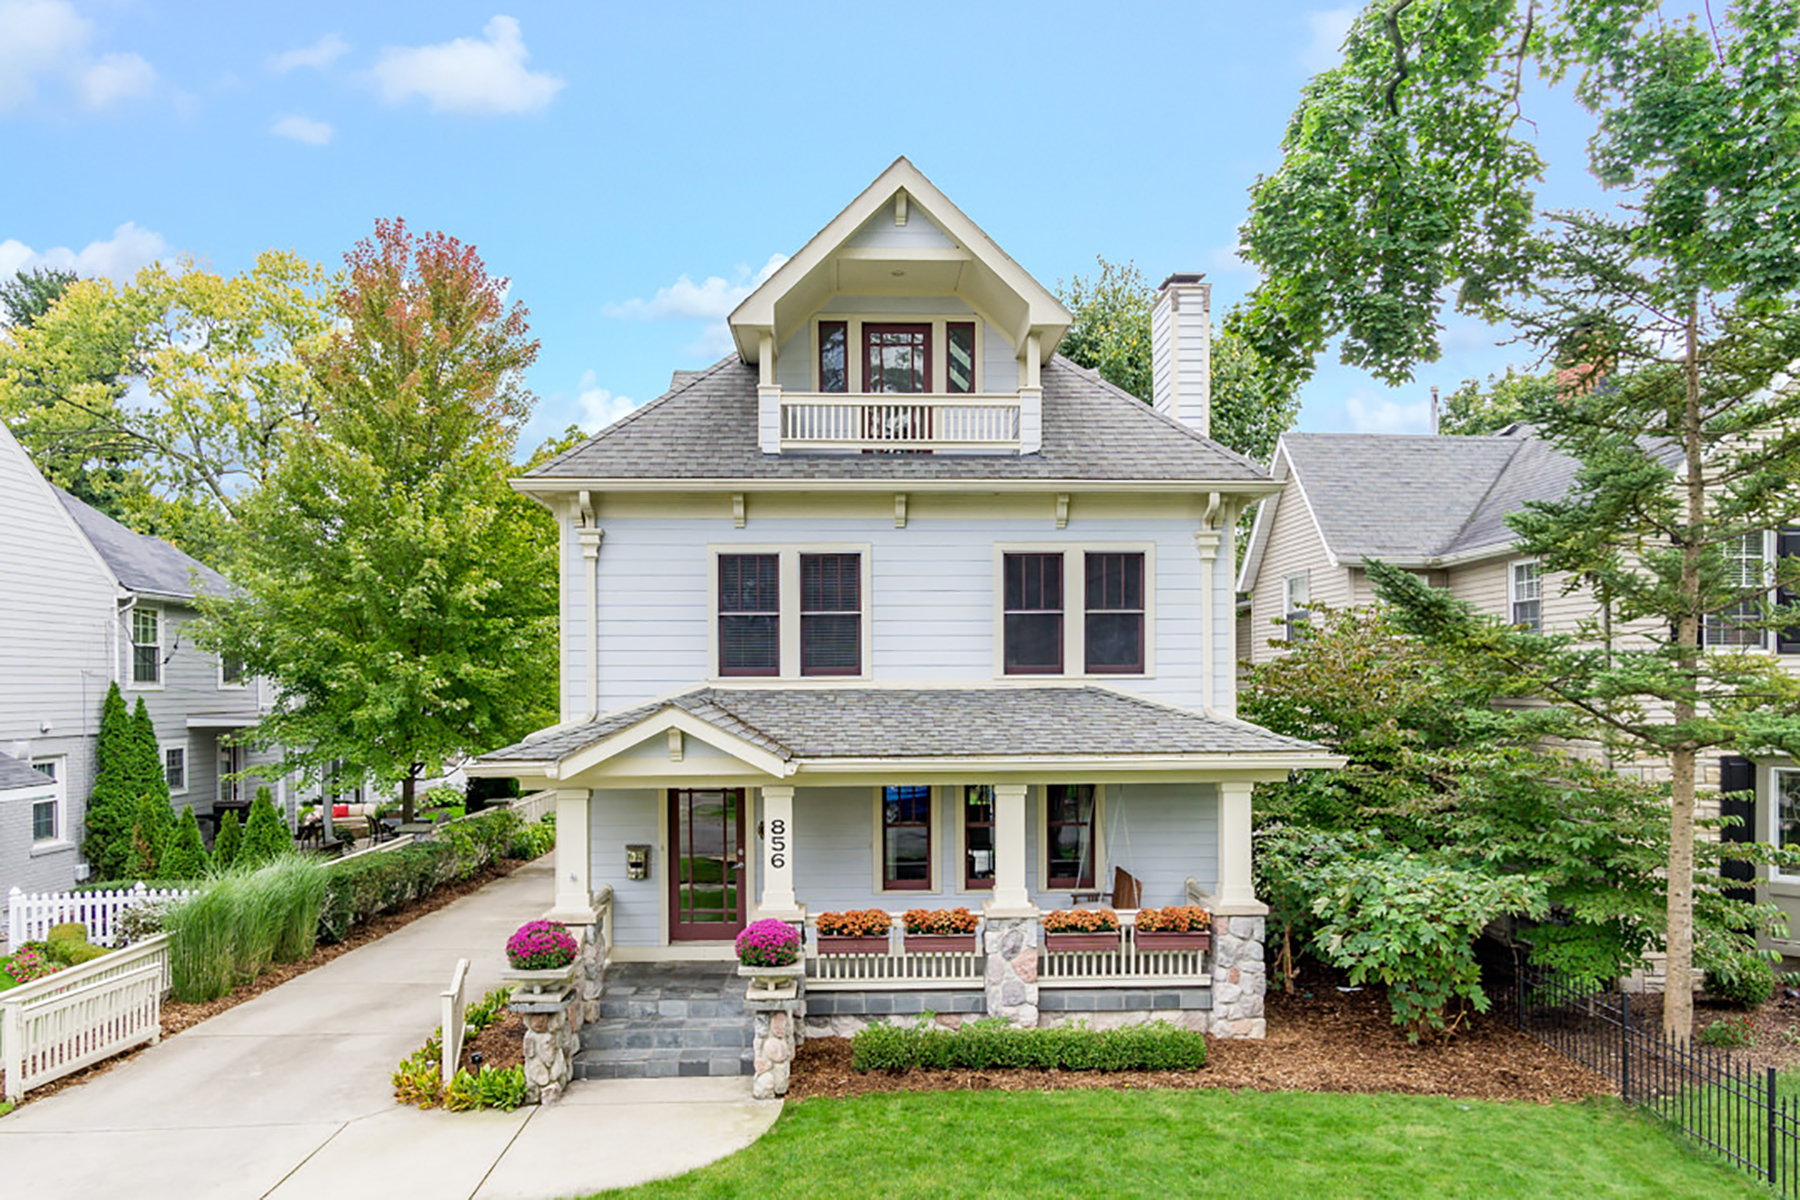 Single Family Homes for Sale at Birmingham 856 Lakeview Avenue Birmingham, Michigan 48009 United States